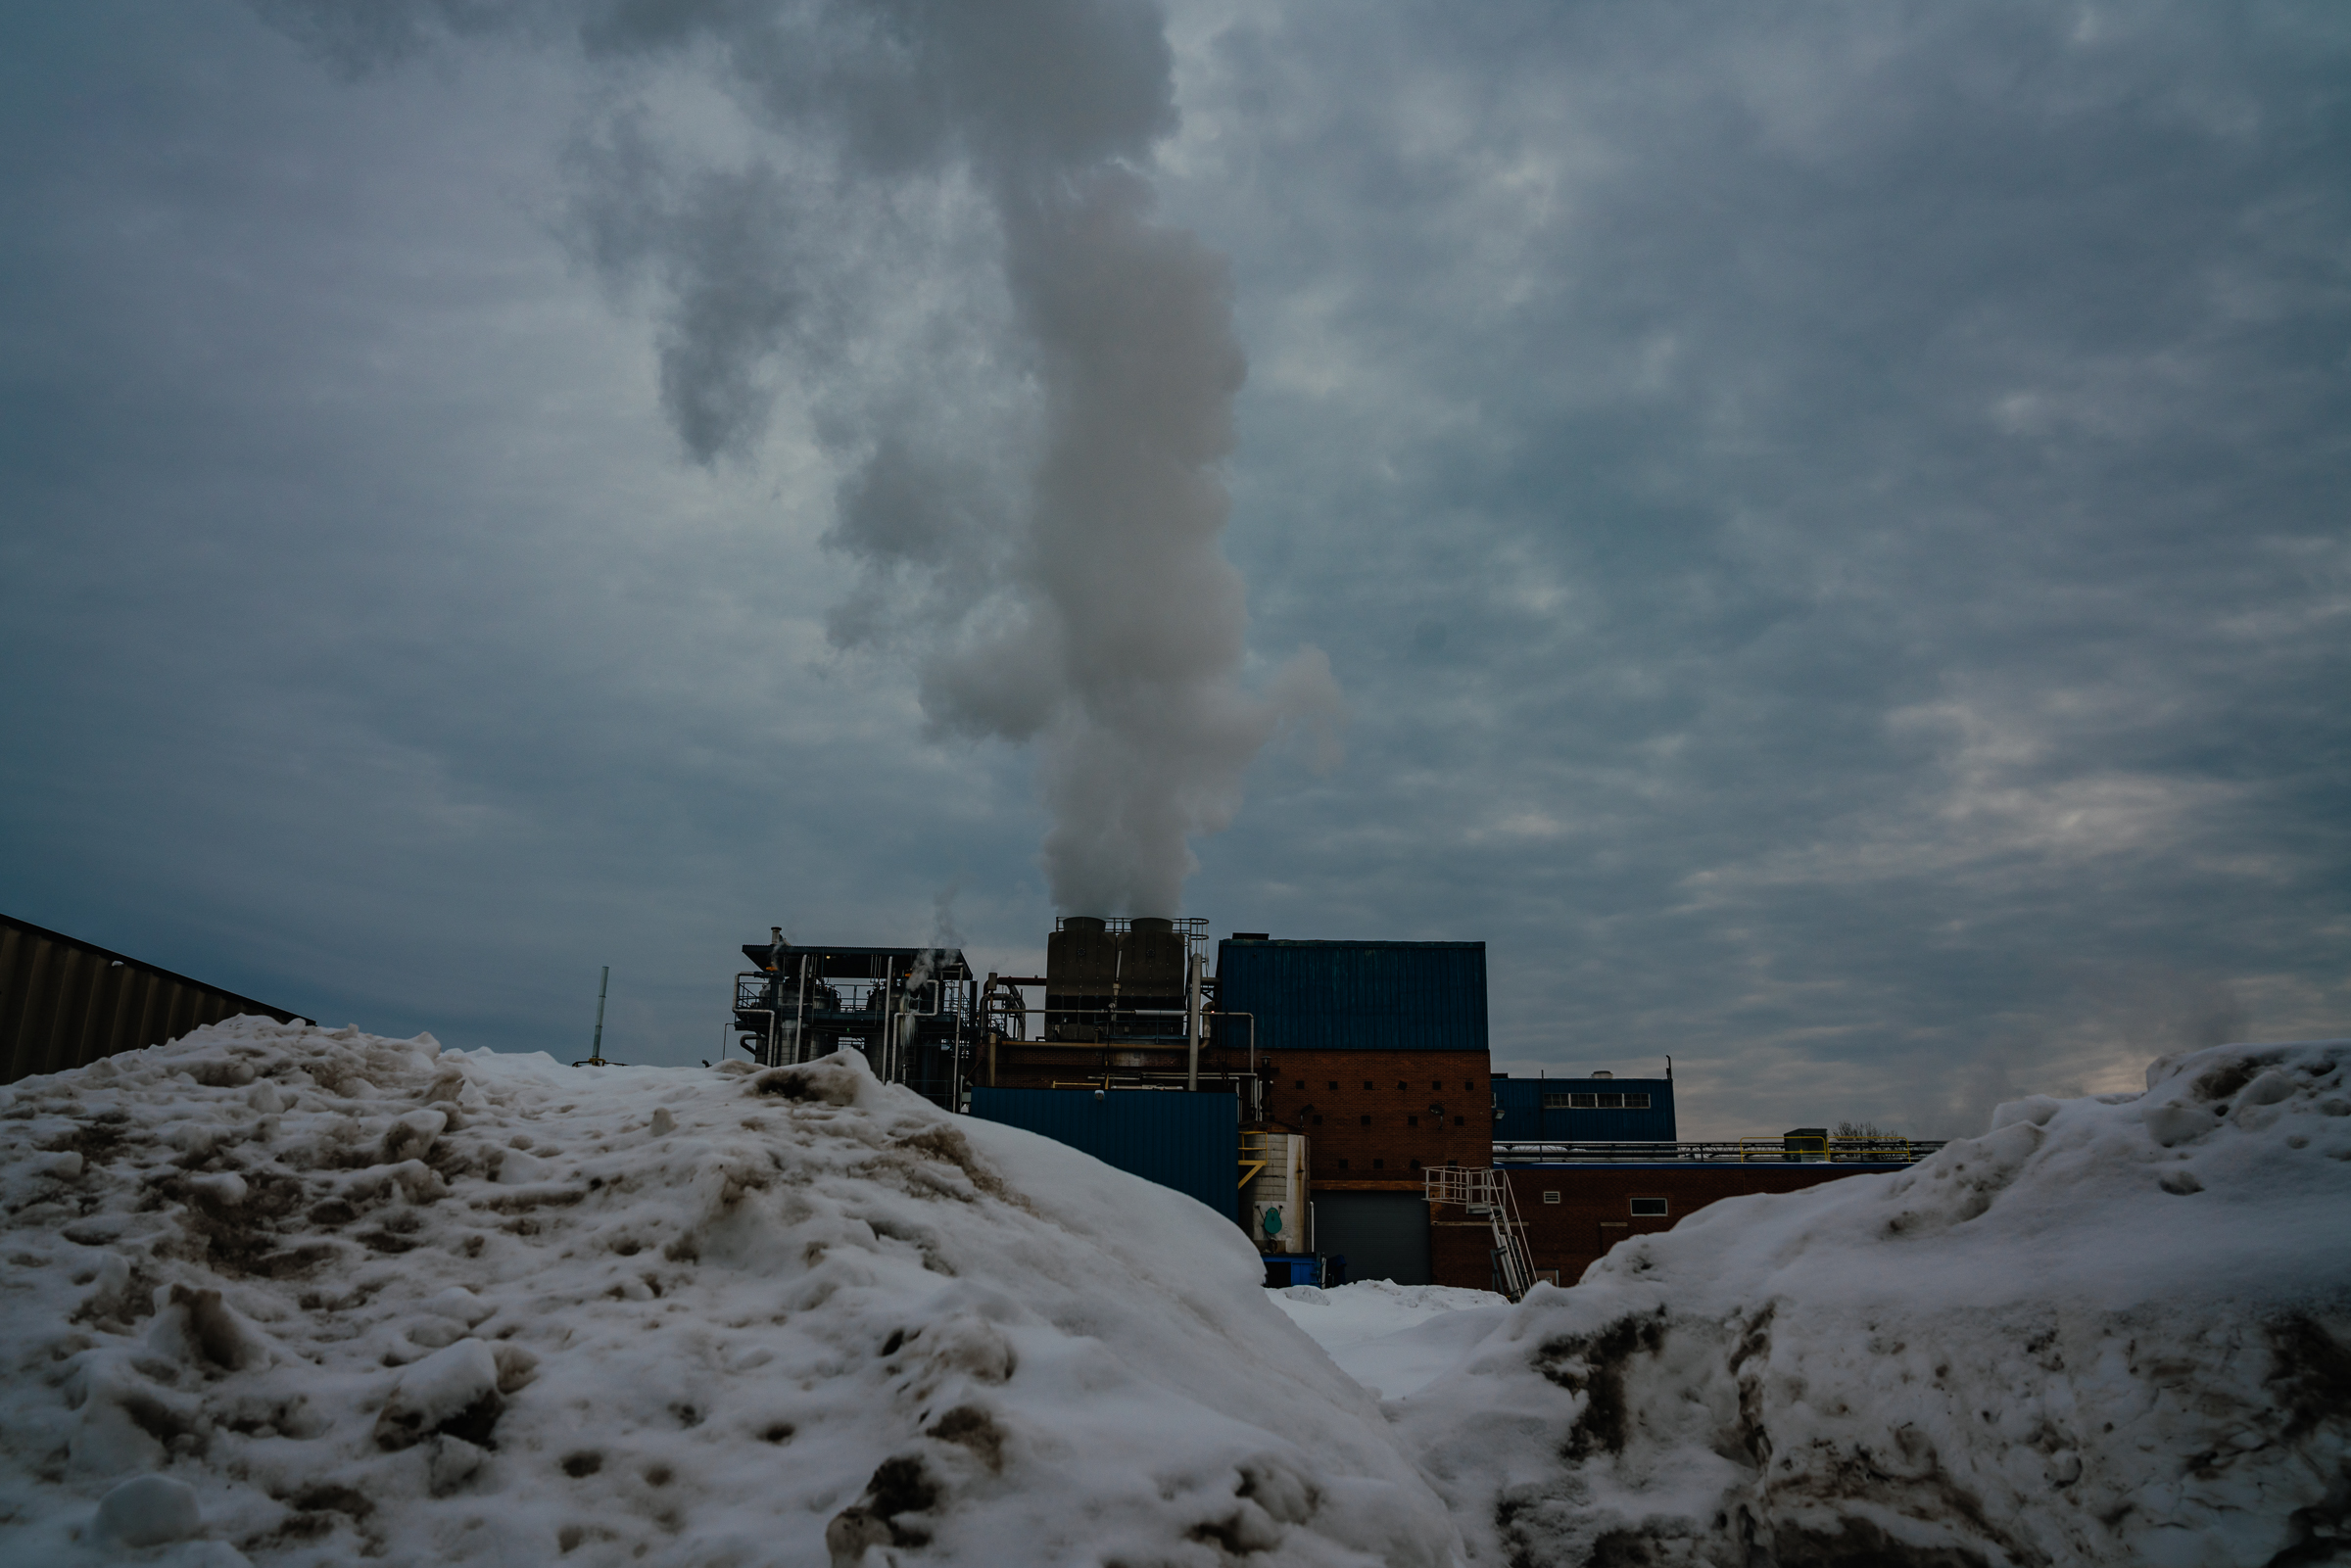 Vantage Specialty Chemicals, February 21, 2021. Vantage is located in Gurnee, IL and uses ethylene oxide to make other chemicals and consumer products. Photographed by Jamie Kelter Davis for The Intercept.